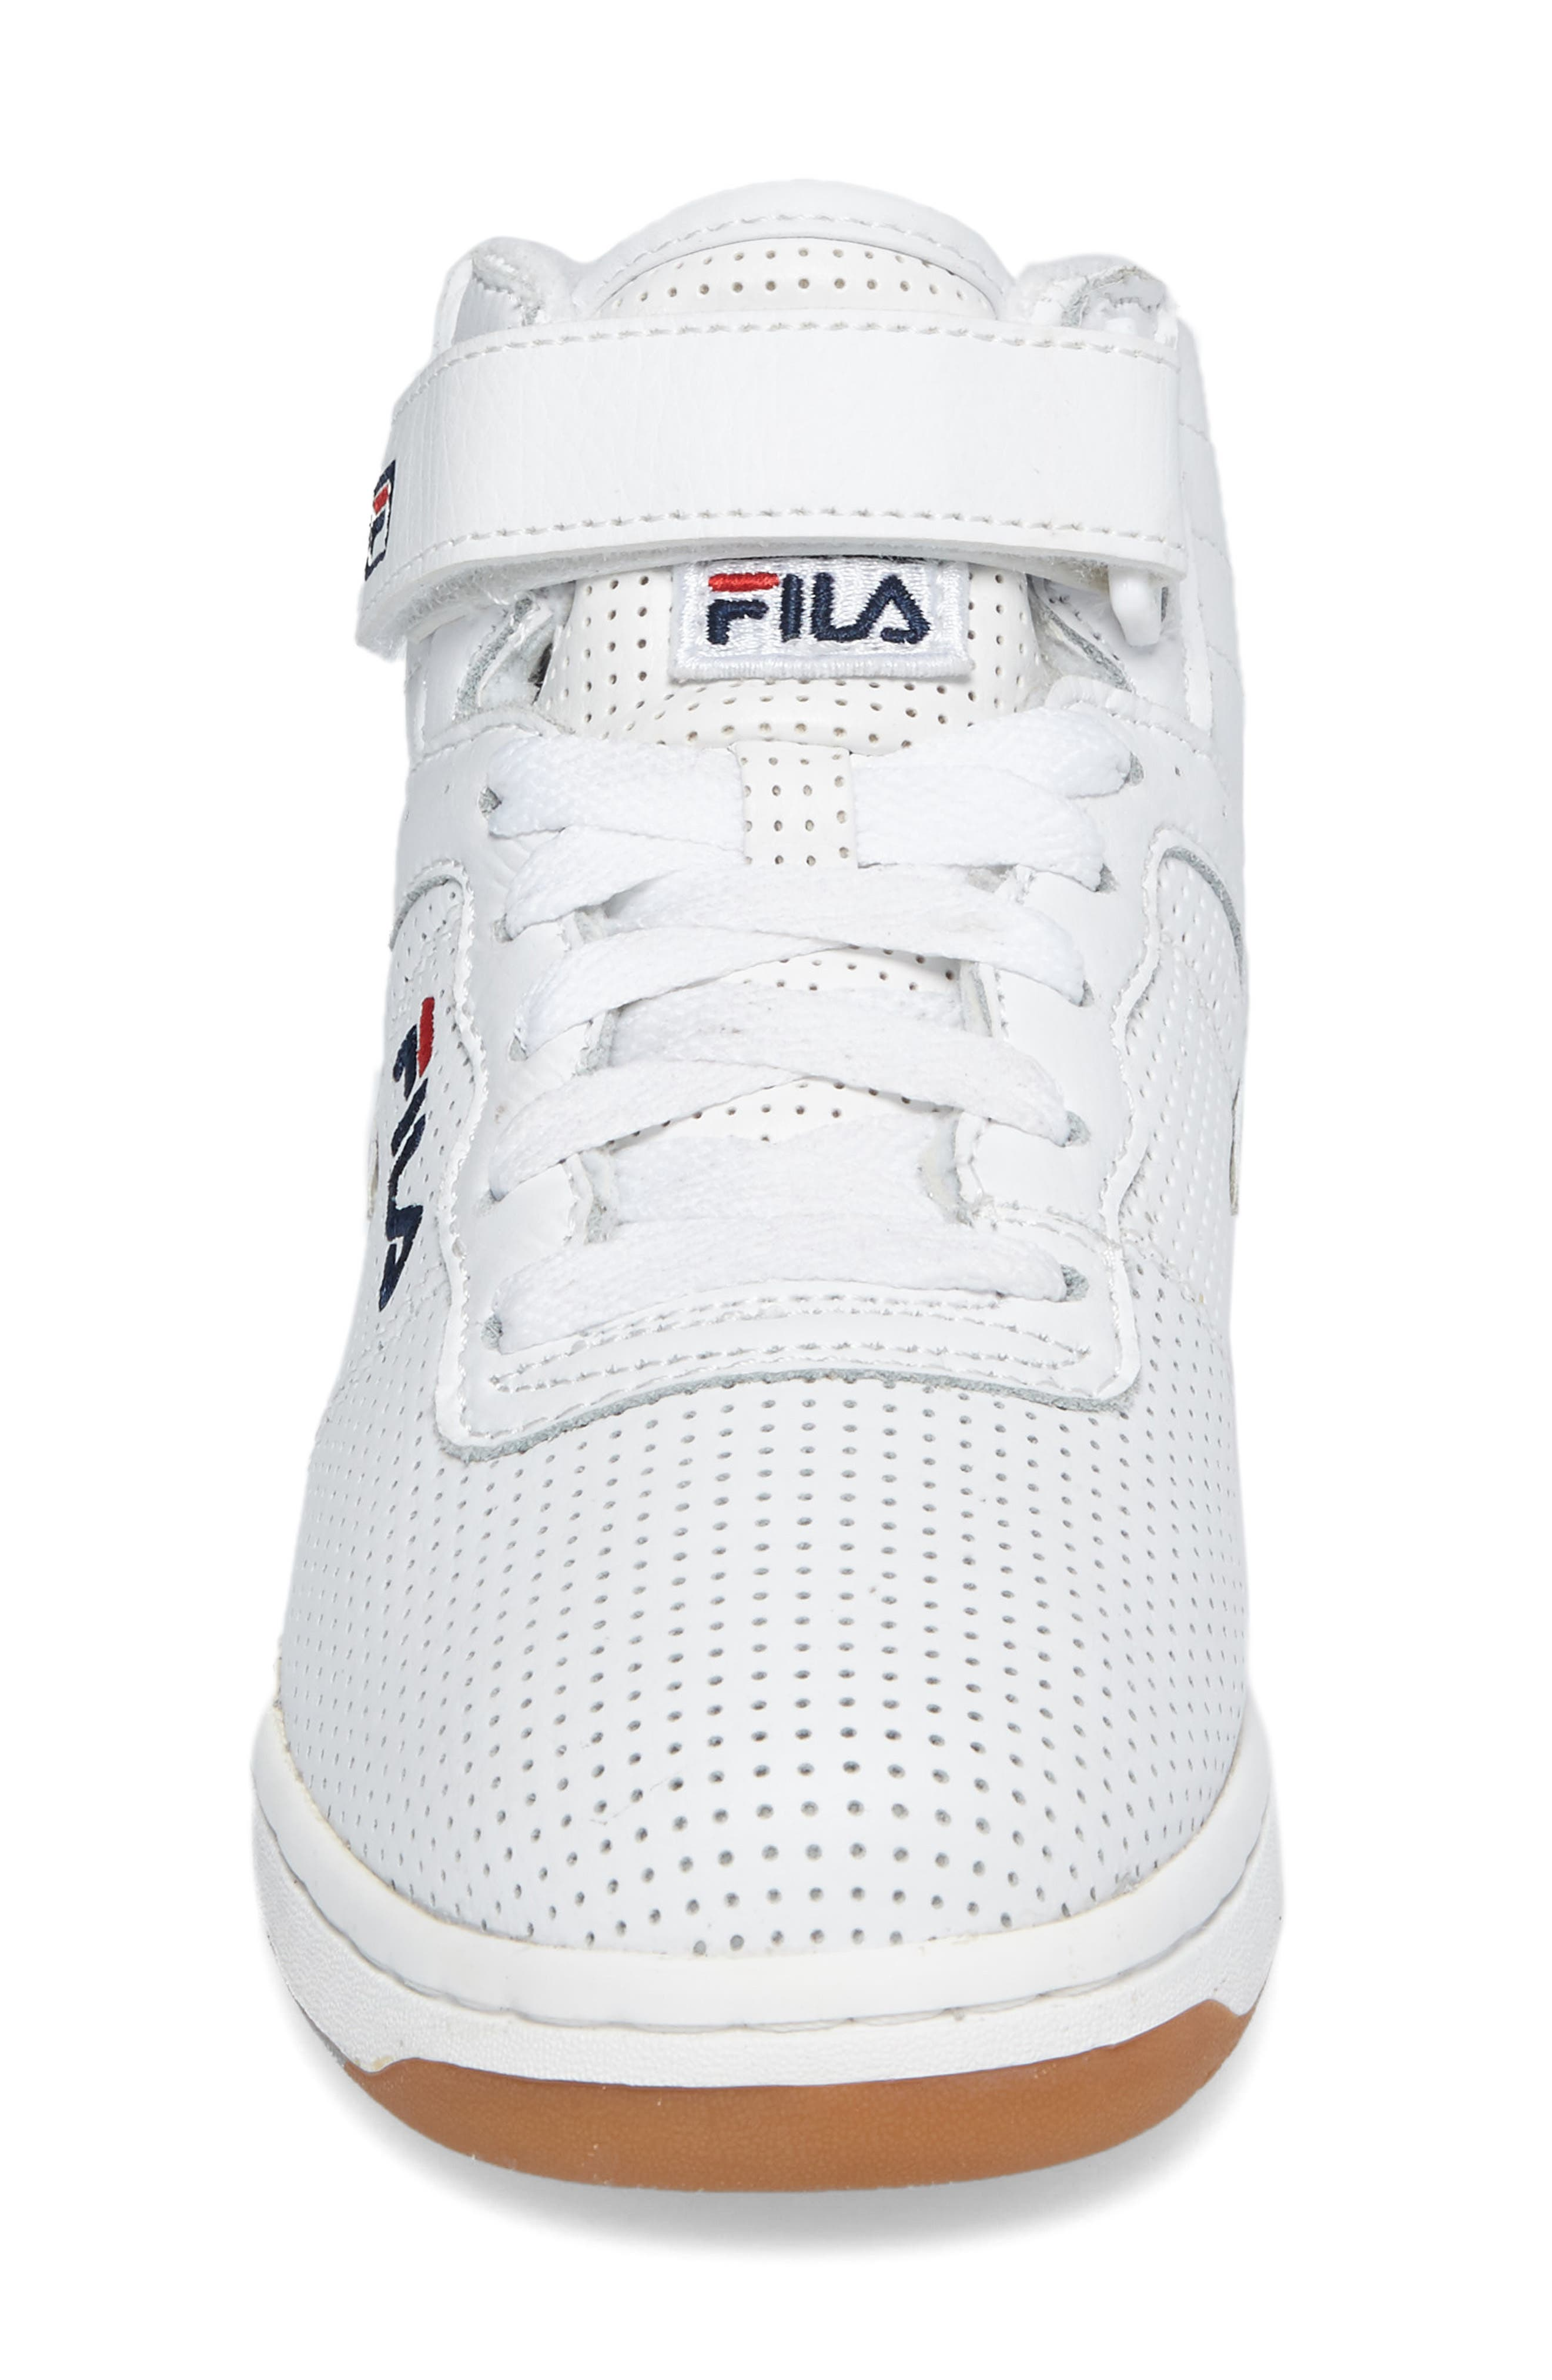 F-13 Perforated High Top Sneaker,                             Alternate thumbnail 4, color,                             150